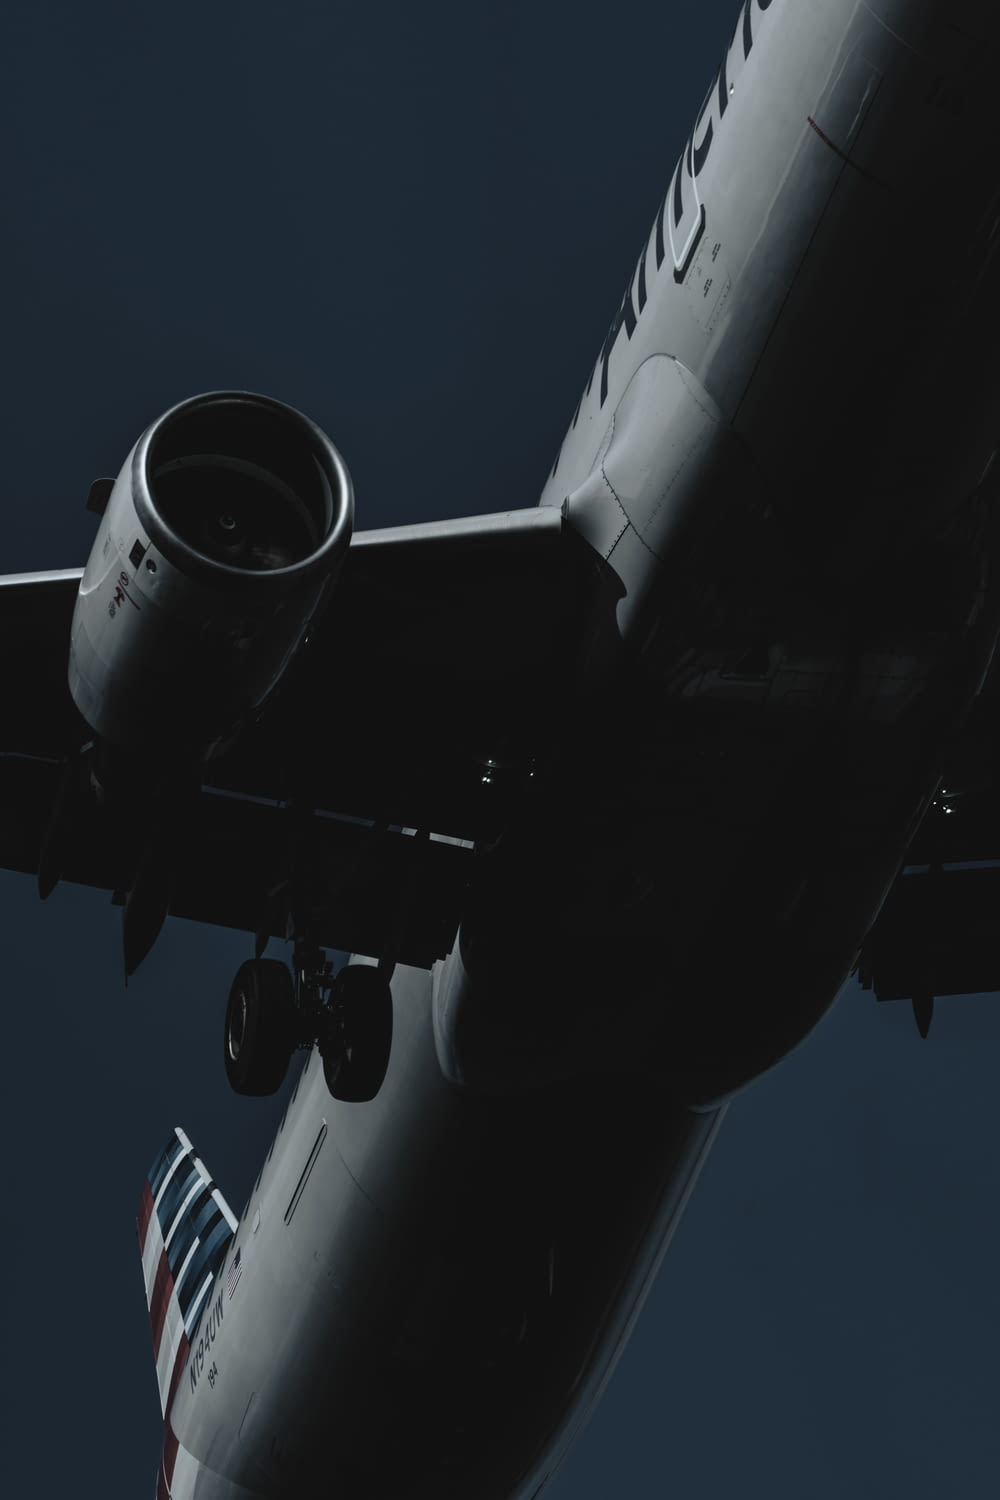 shallow focus photo of gray airplane